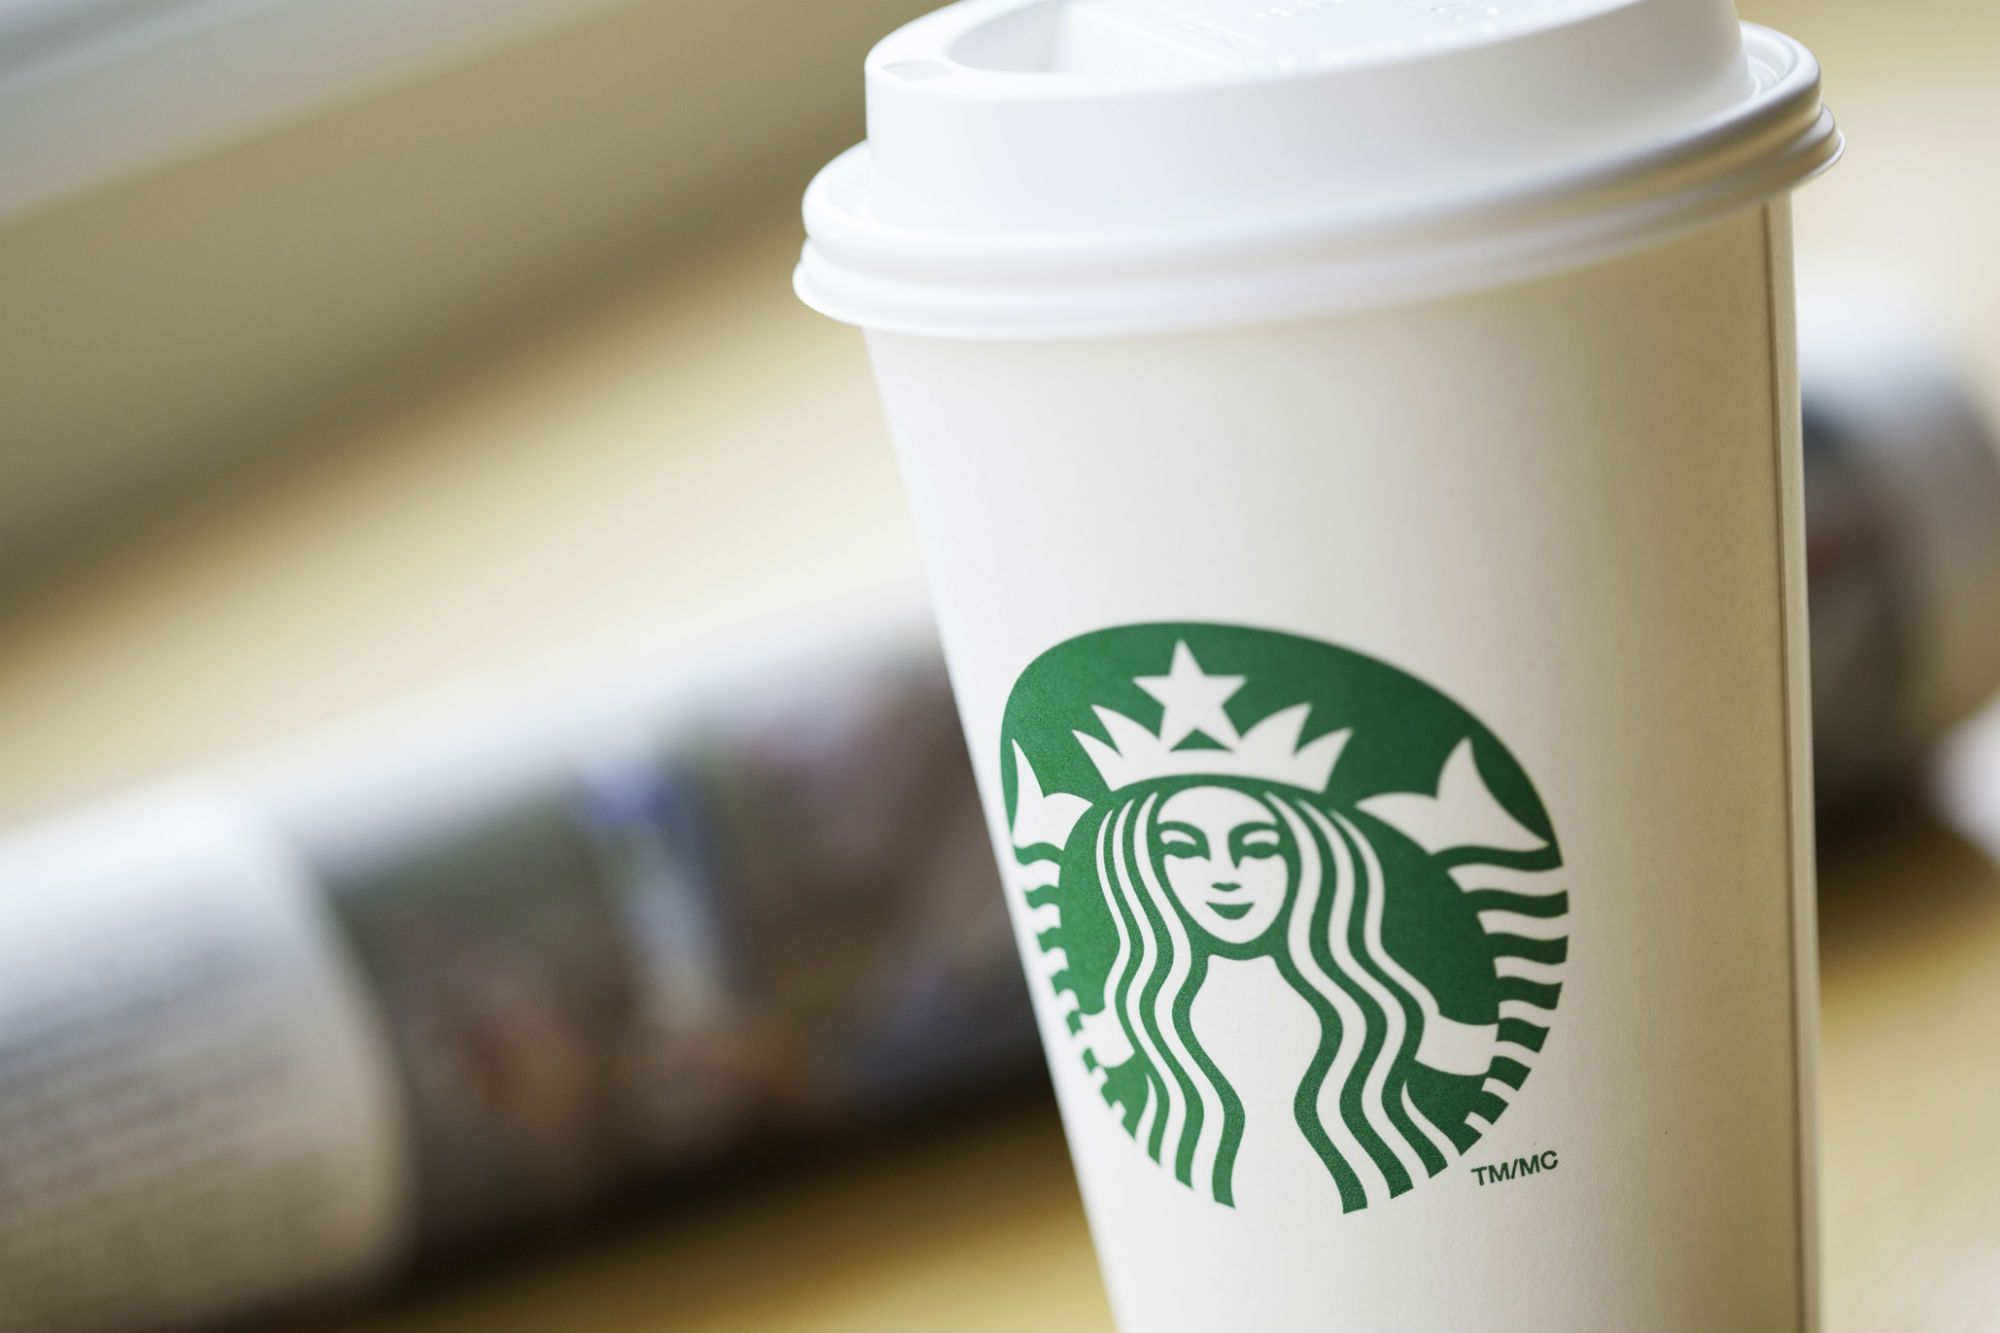 Starbucks begins testing fees for paper cups